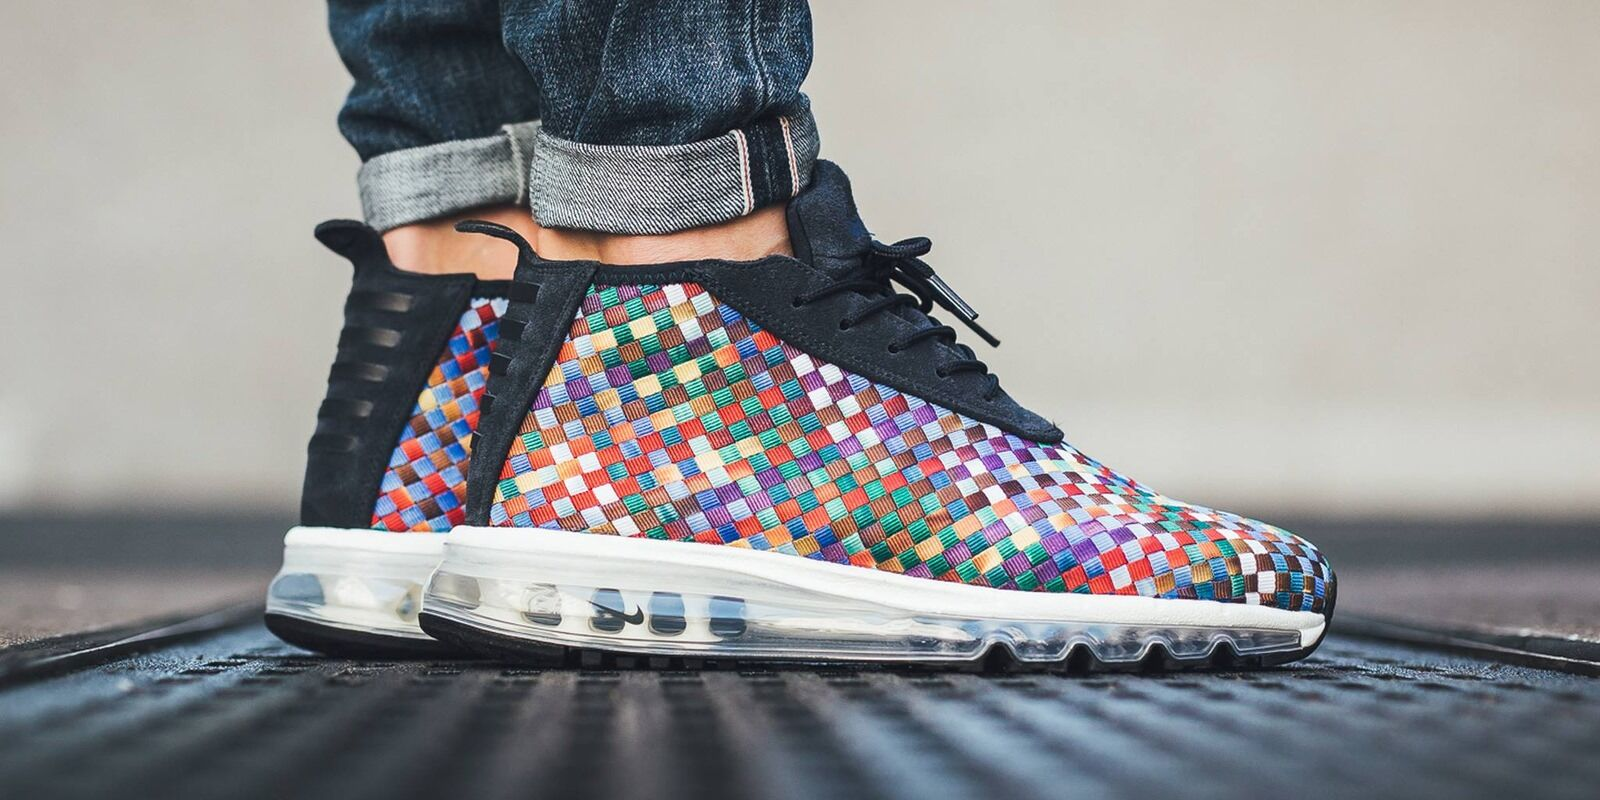 Nike Air Max Woven Boot SE Men's Shoe, Size 10.5 (AH8139-400) MULTICOLORED